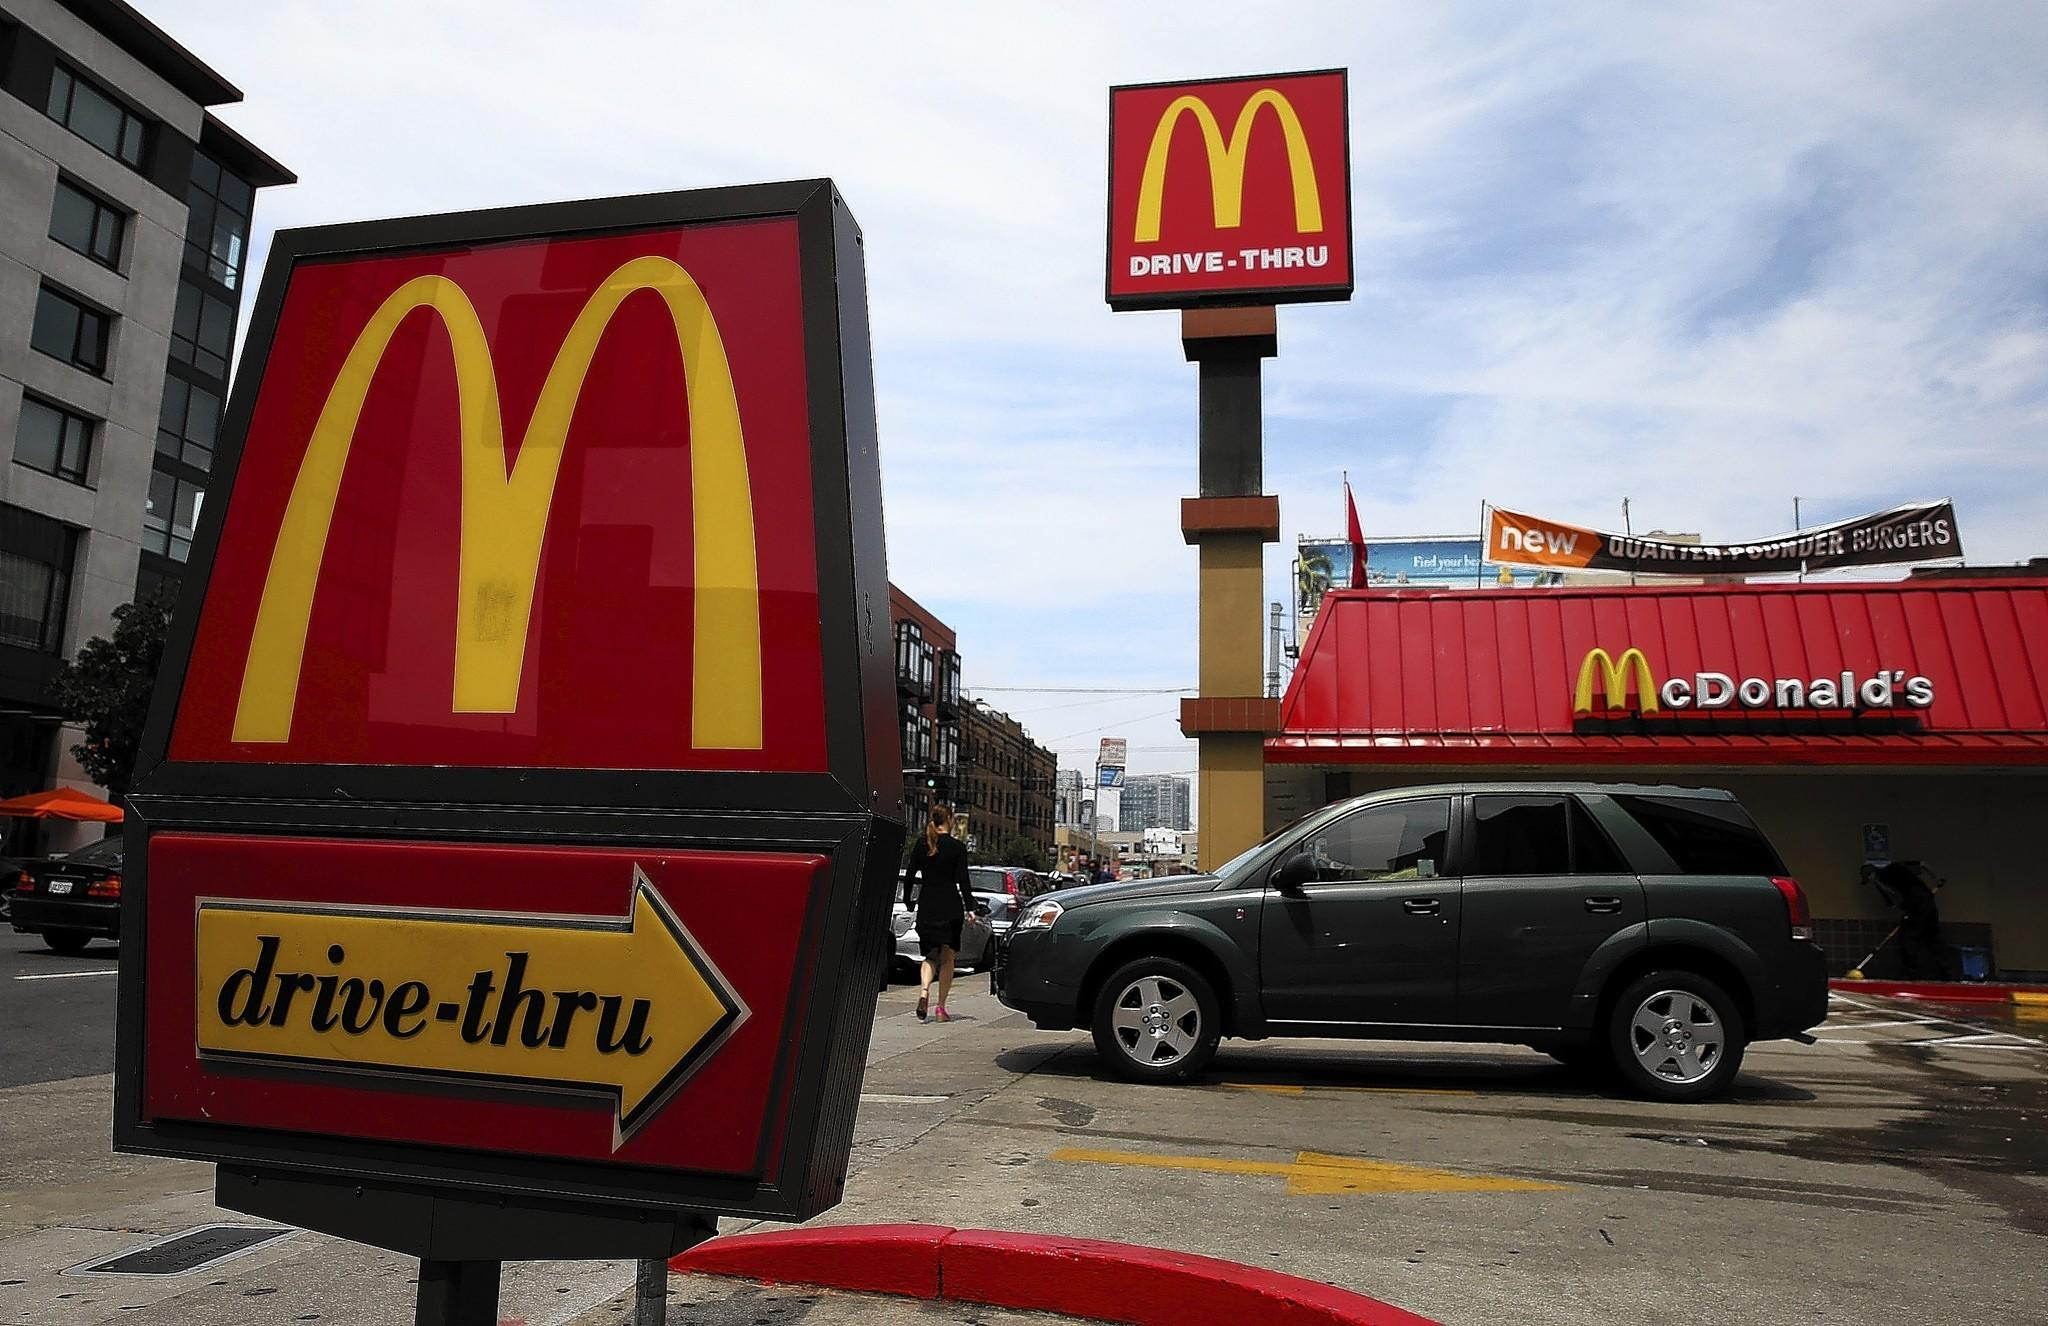 Ray Kroc of McDonald's saw what the McDonald brothers were doing in California and saw the potential to make it work on a grander scale through consistency, marketing and franchising.